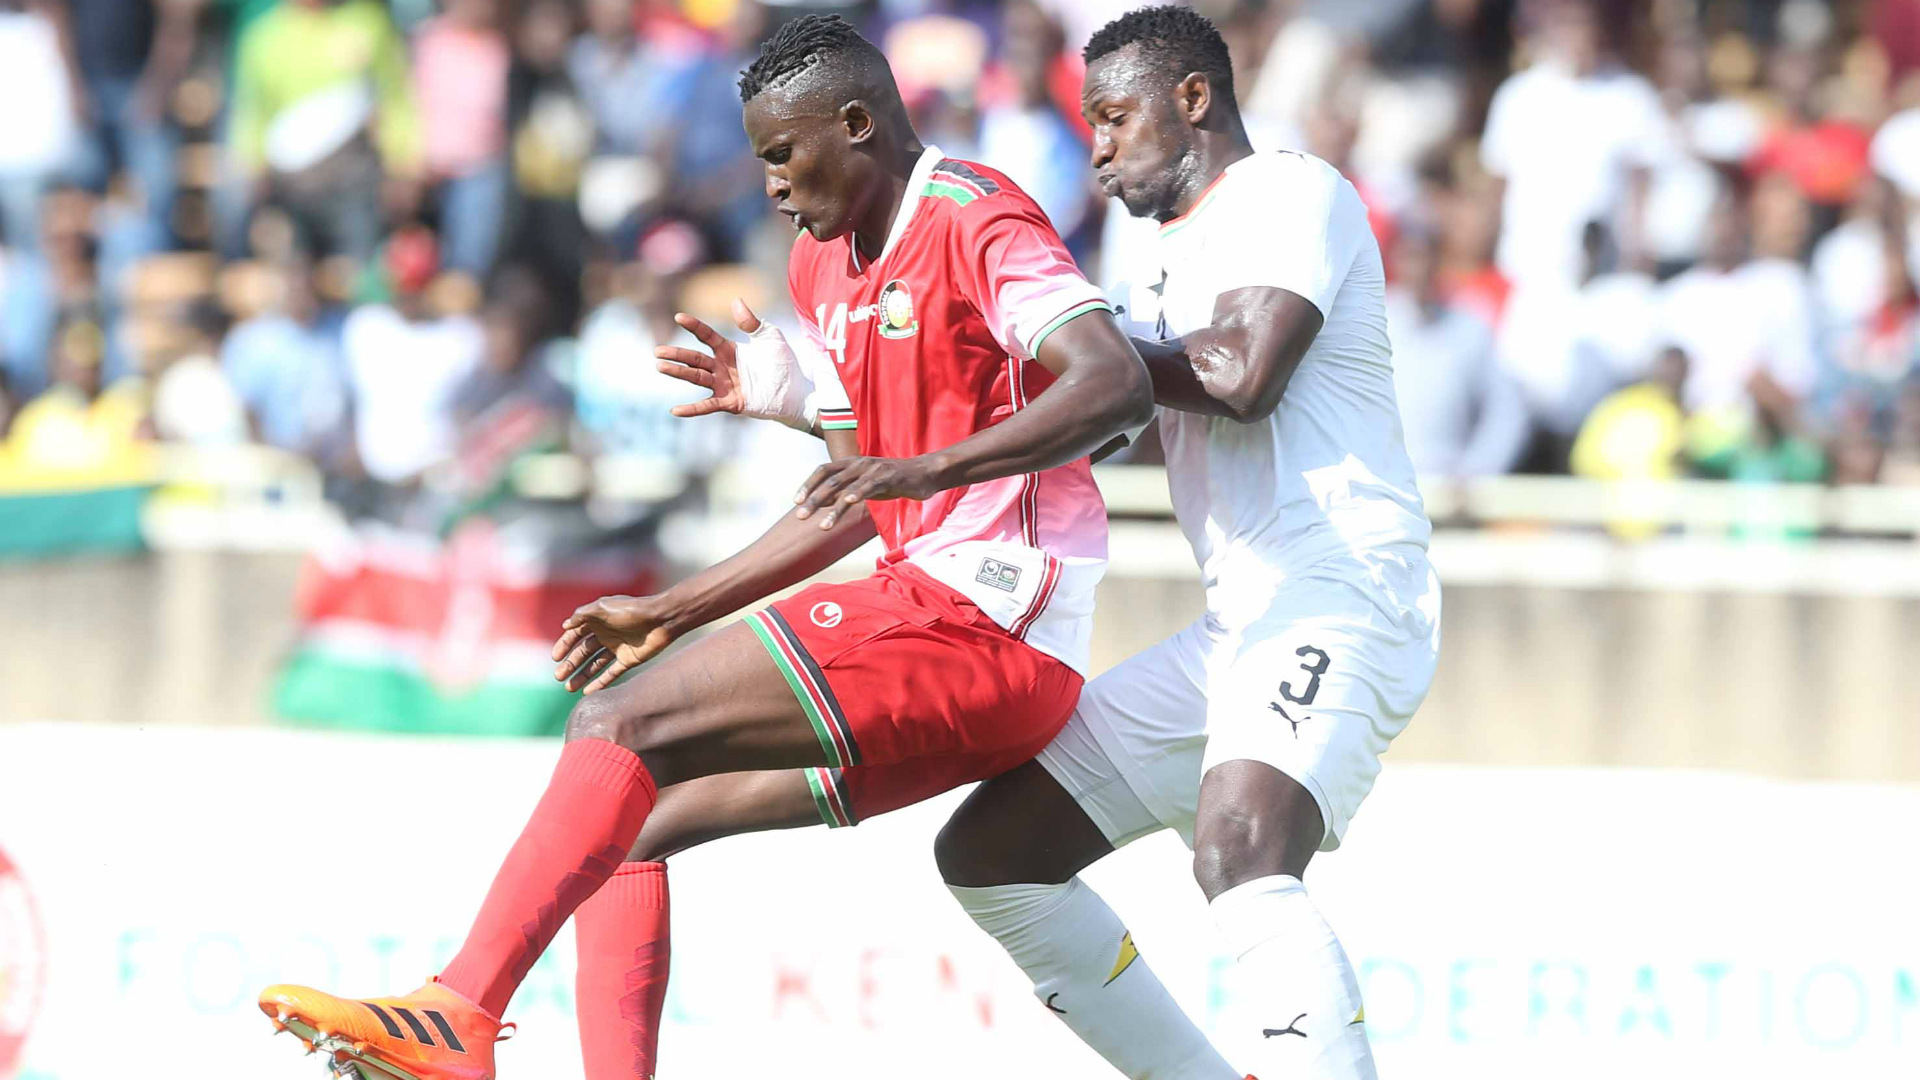 Michael Olunga of Kenya v Ghana defender.